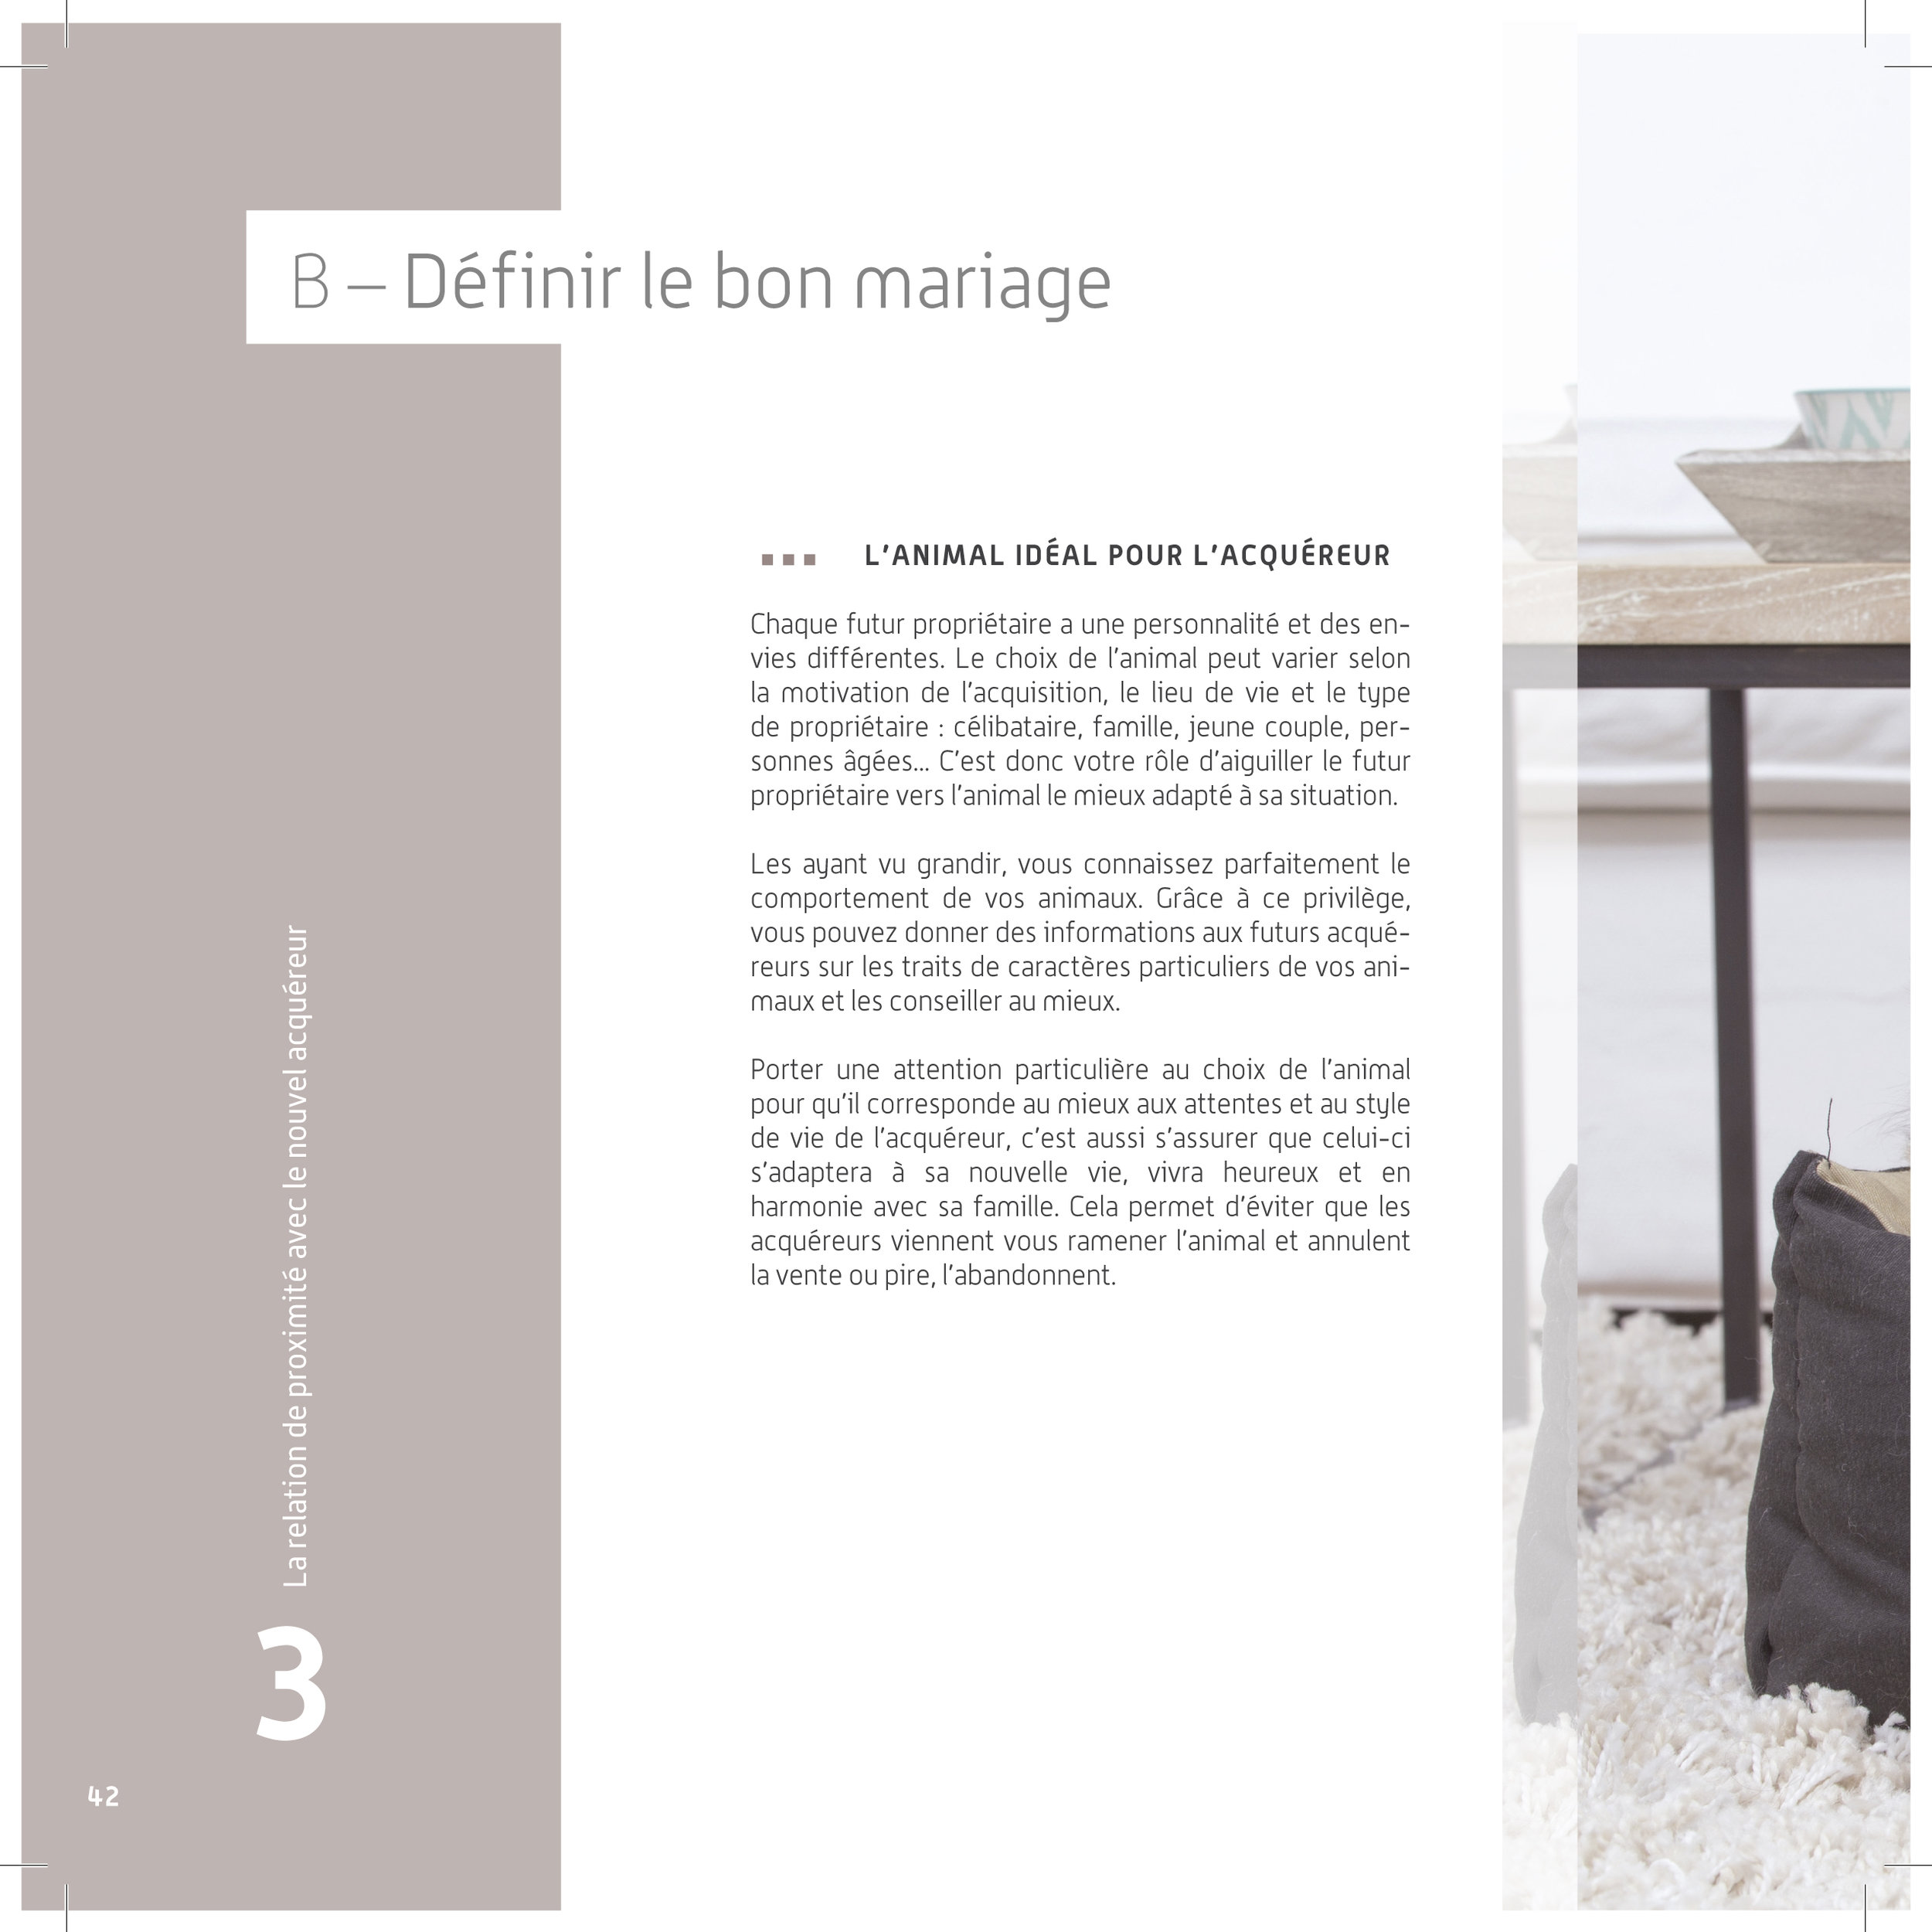 guide-marketing-elevage_2016_fr_hd-42.jpg